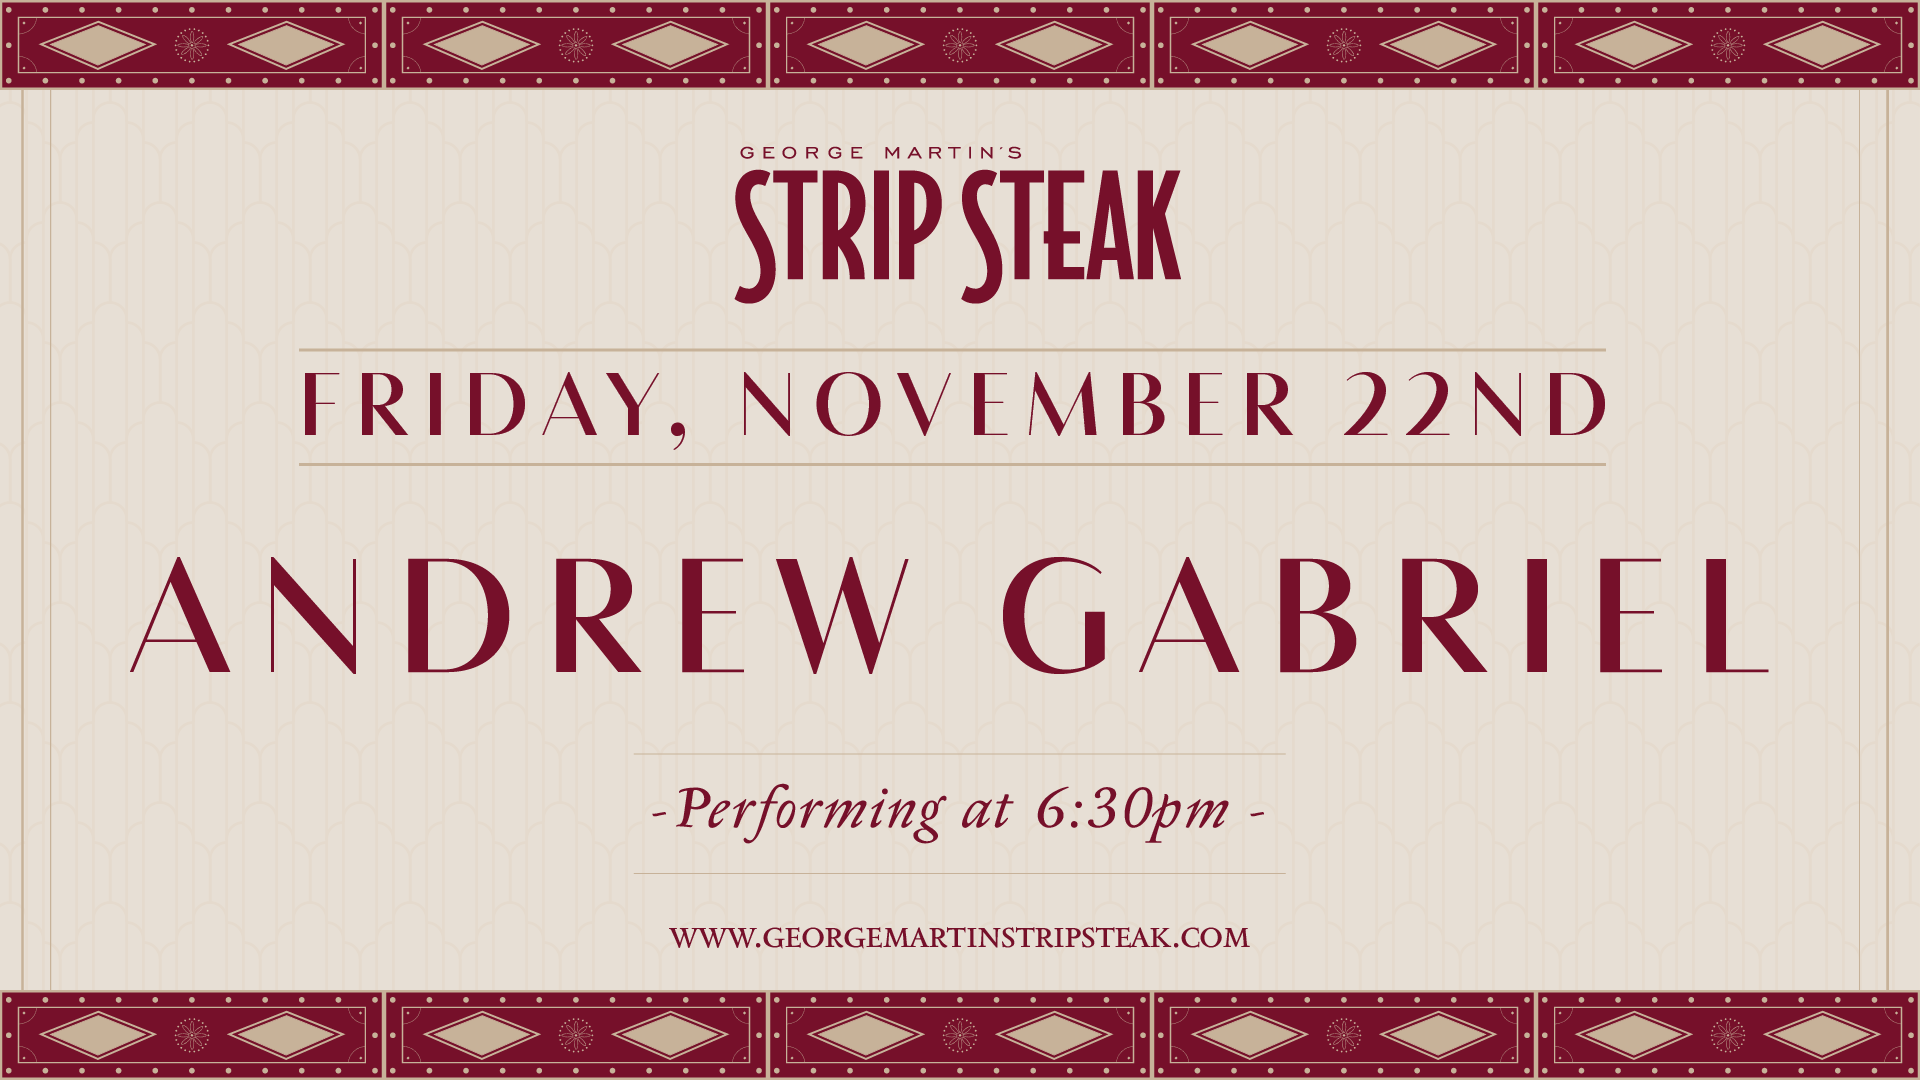 Flyer for Friday, November 22nd with Andrew Gabriel performing at 6:30pm.